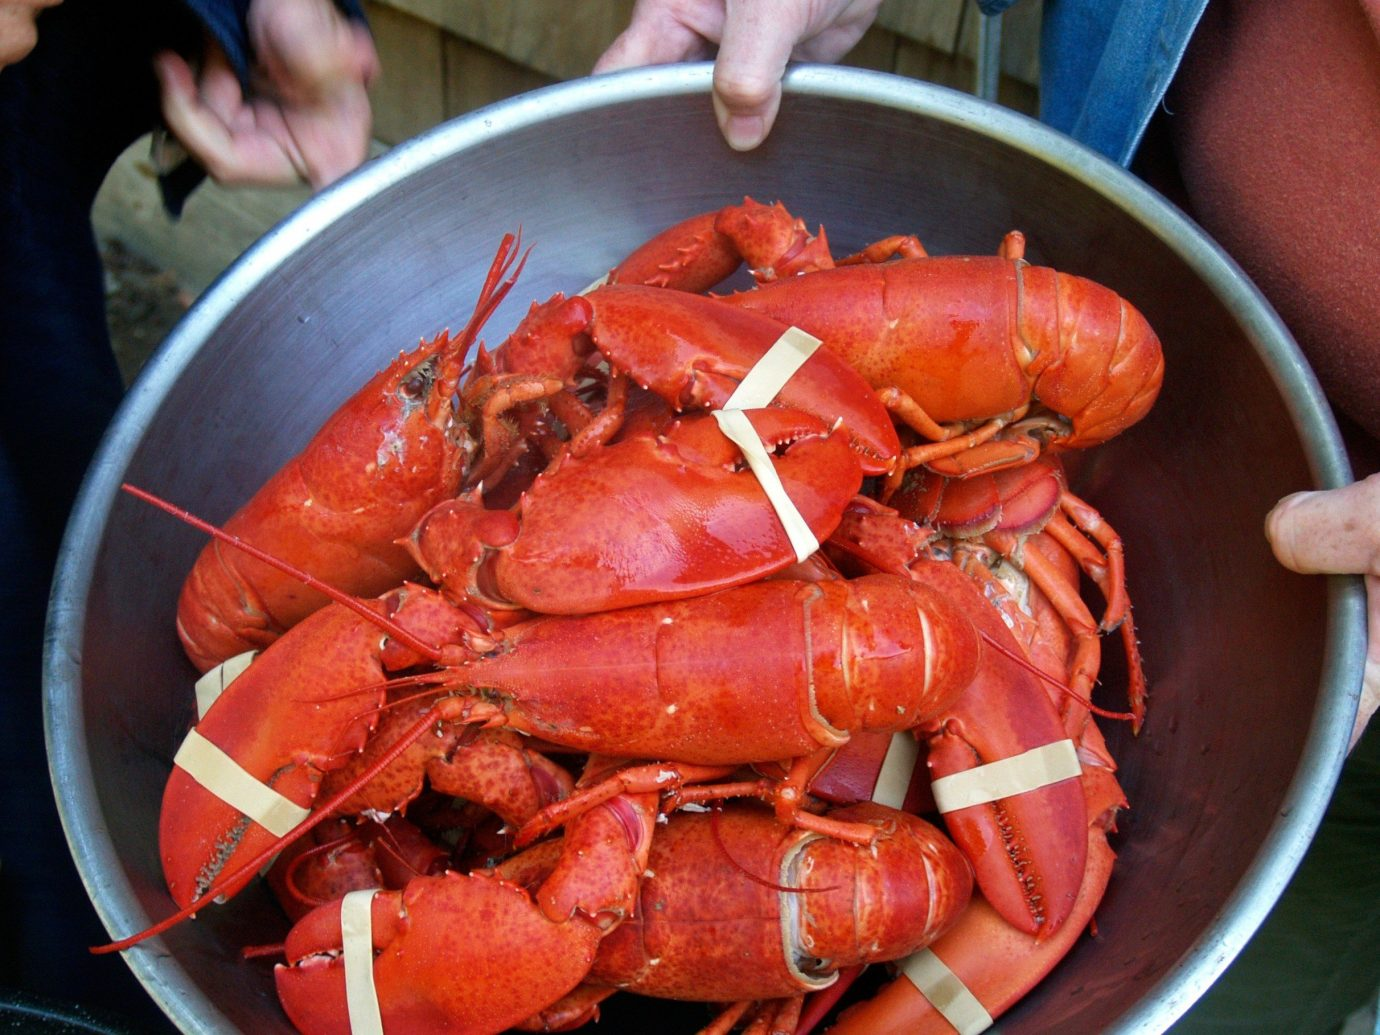 Beach arthropod invertebrate animal person lobster food crustacean dungeness crab decapoda Seafood american lobster animal source foods seafood boil fish crab king crab produce crayfish